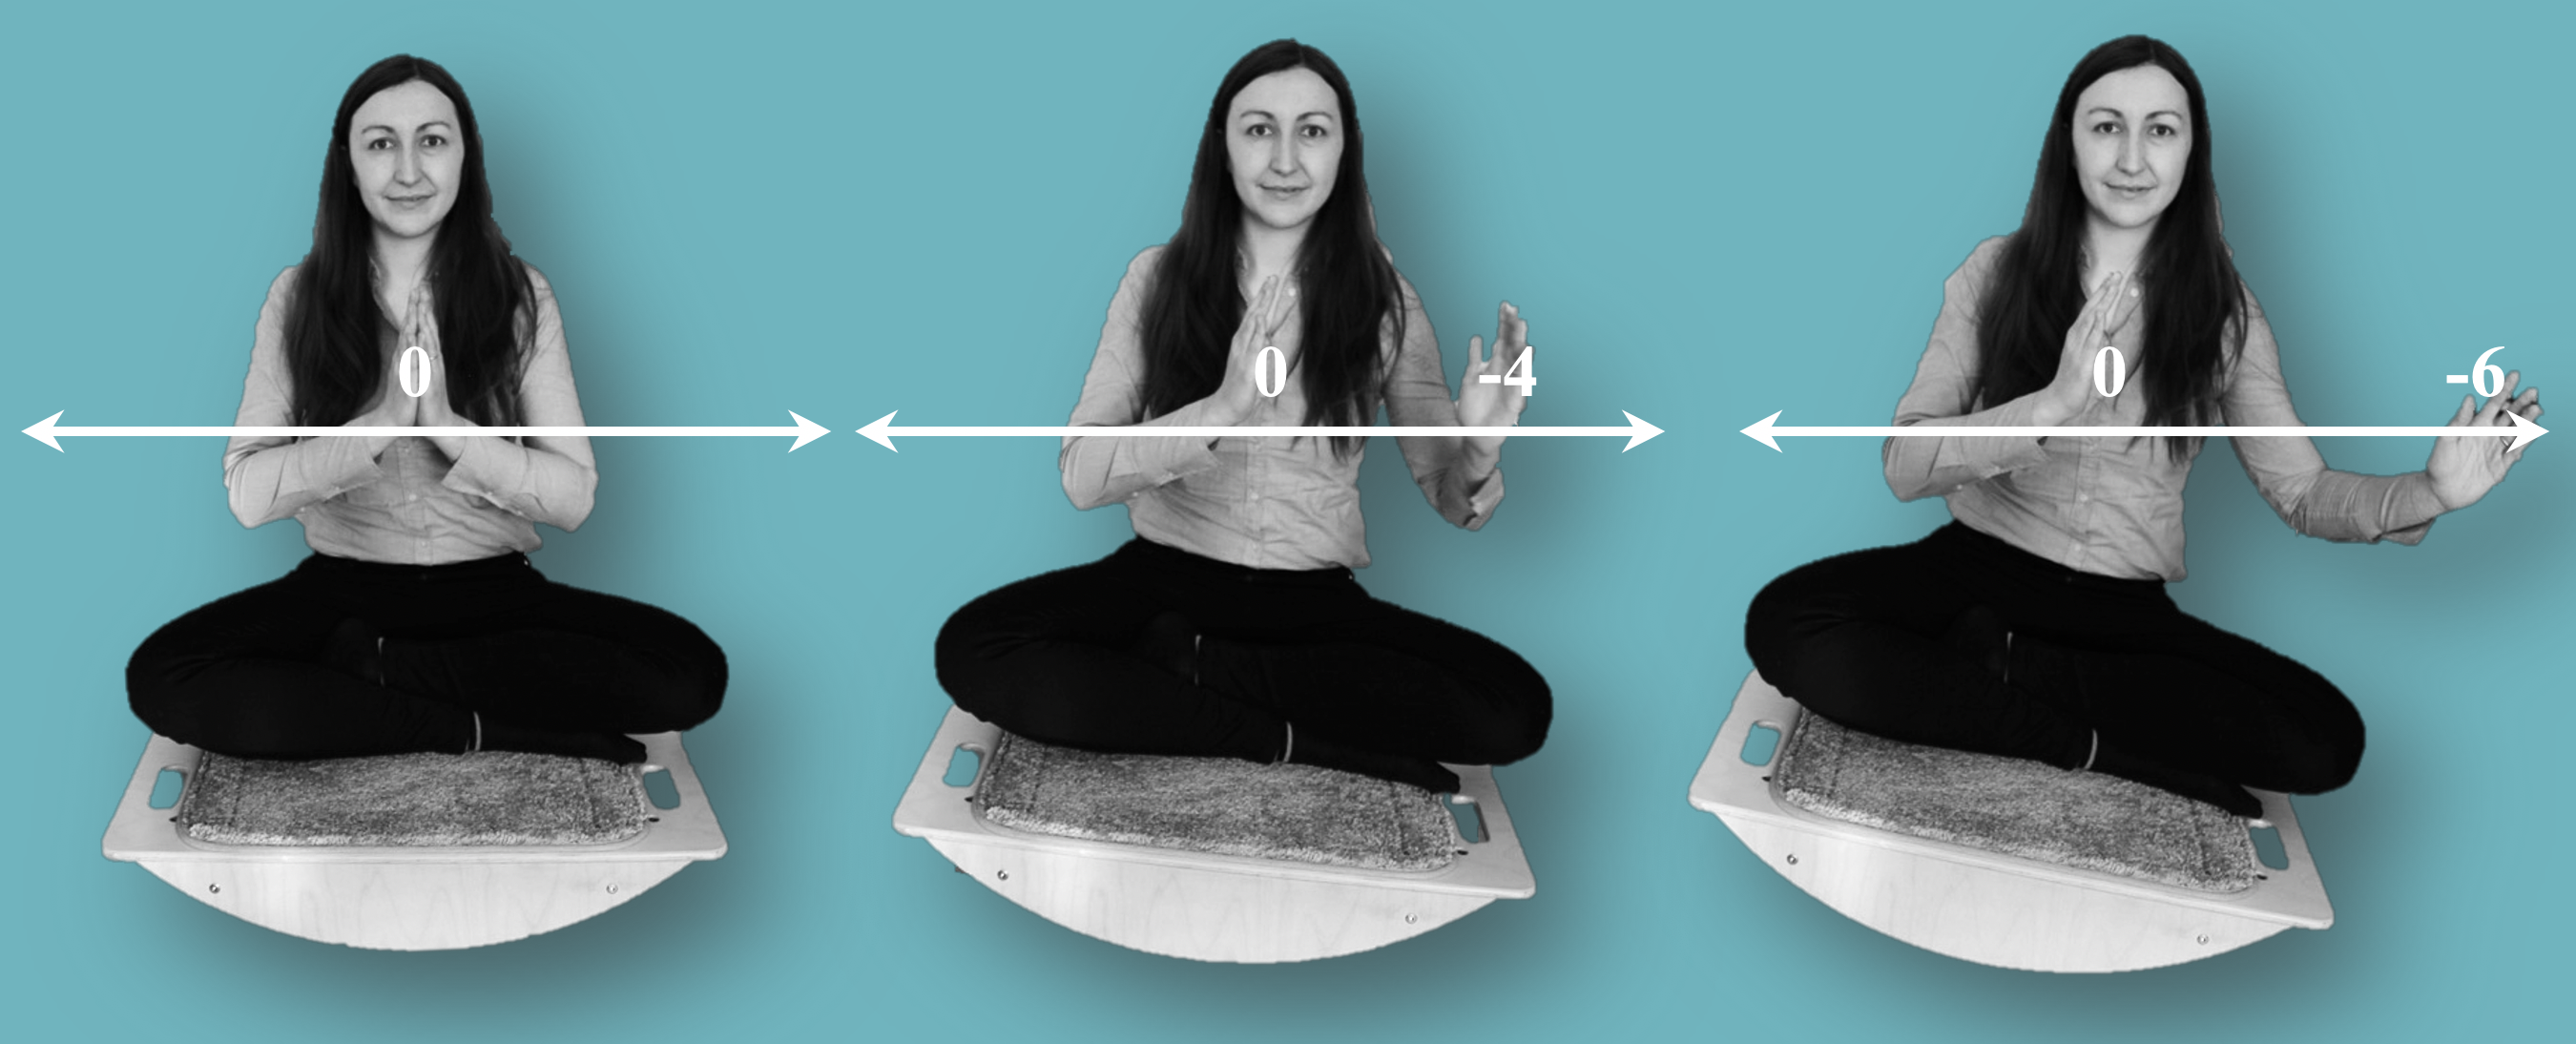 Series of three photographs of a woman sitting on a wooden balance board against a blue background. A number line is overlaid over each image. In the first image, the woman (Sofia)'s hands are together at her midline, and the point where they meet is labelled 0 on the number line. In the second image, the right hand remains in the middle at 0 while the left has moved left by about a foot to a point labelled -4. The movement of the left hand has resulted in a slight leftward tilt of the balance board. In the third image, the right hand remains in the middle at 0 and the left has moved even further left by another 6 inches or so to a point labelled -6, and the board is tilted further left as a result.